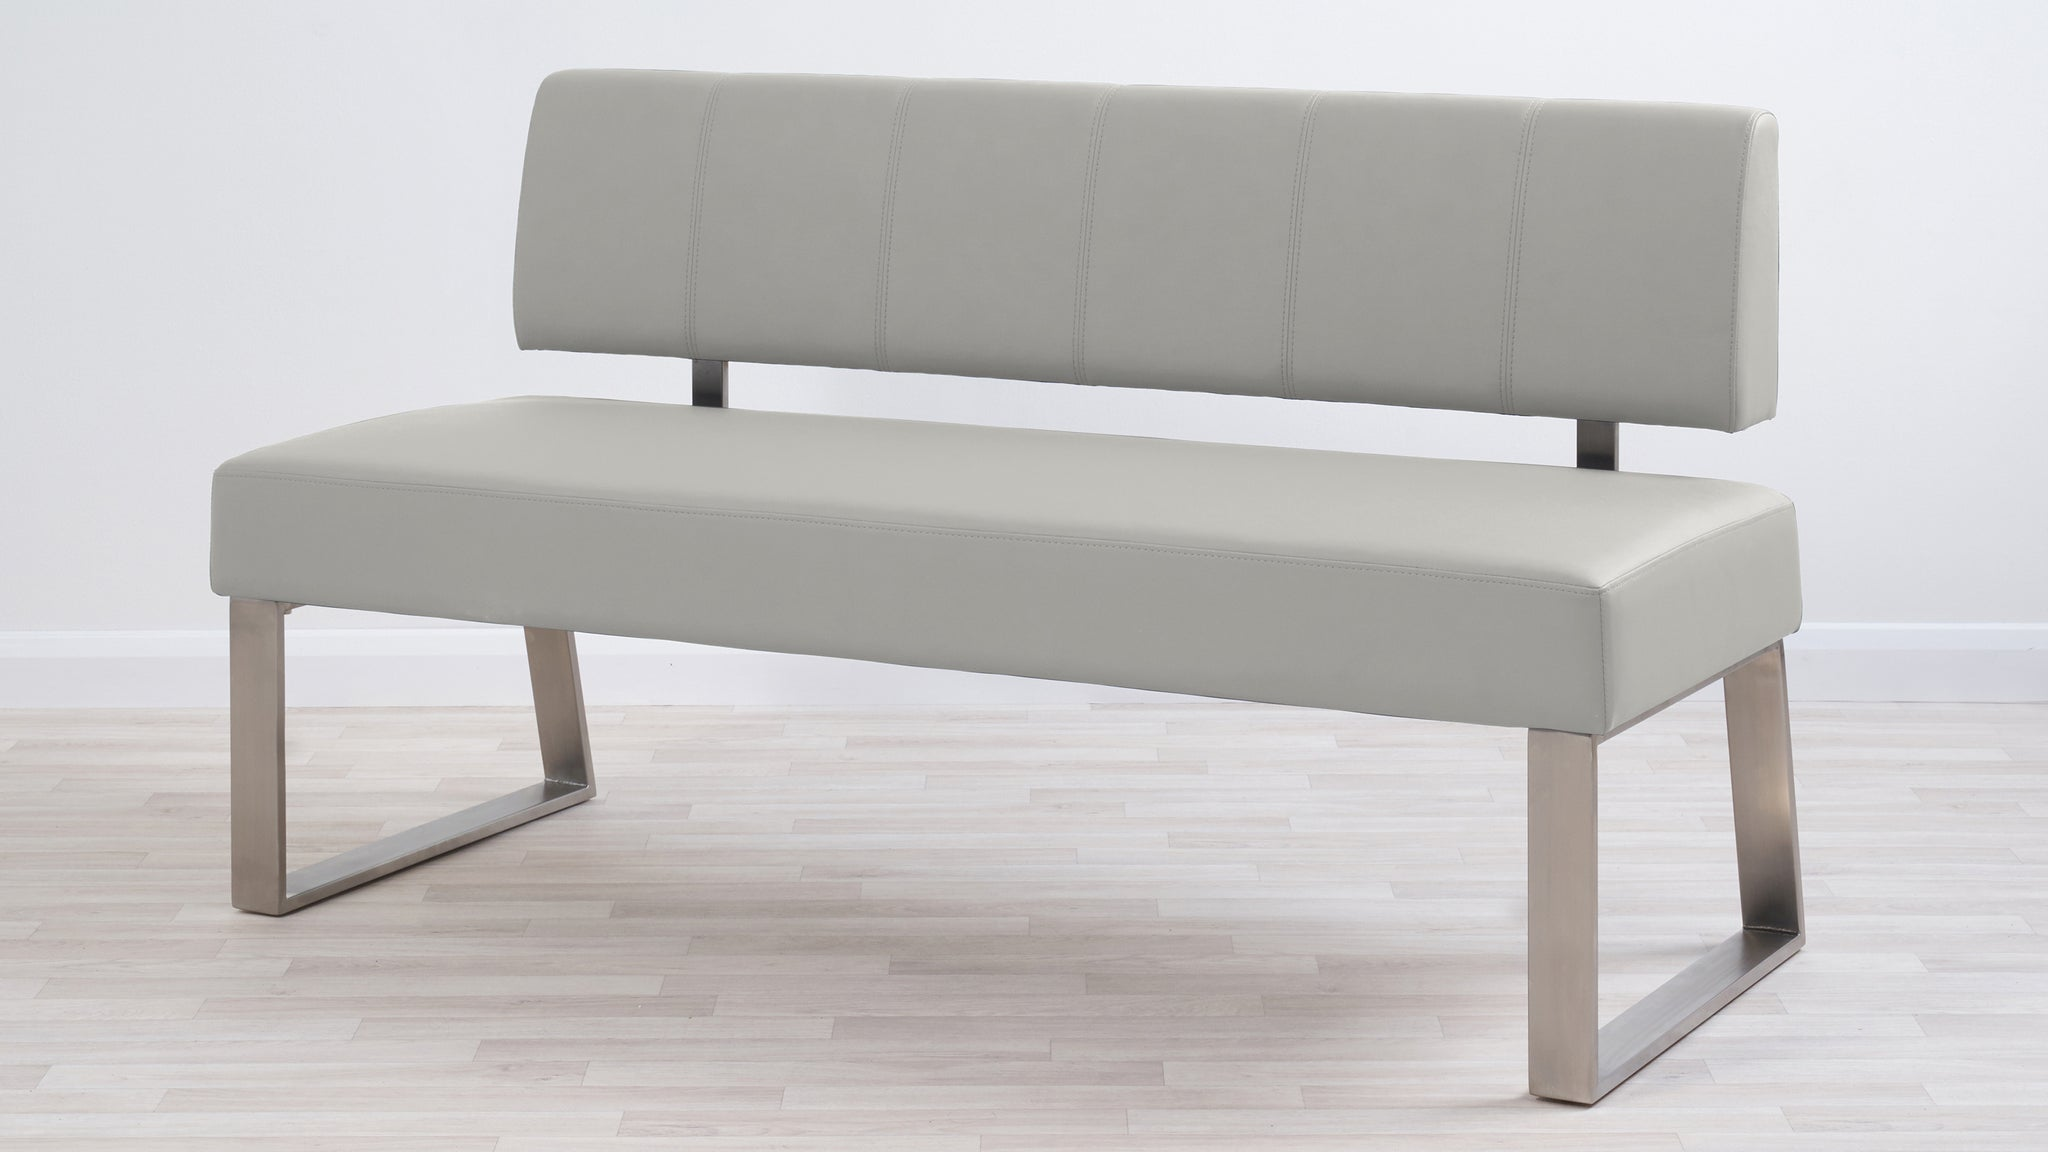 Dover 3 Seater Light Grey Faux Leather Bench With Backrest